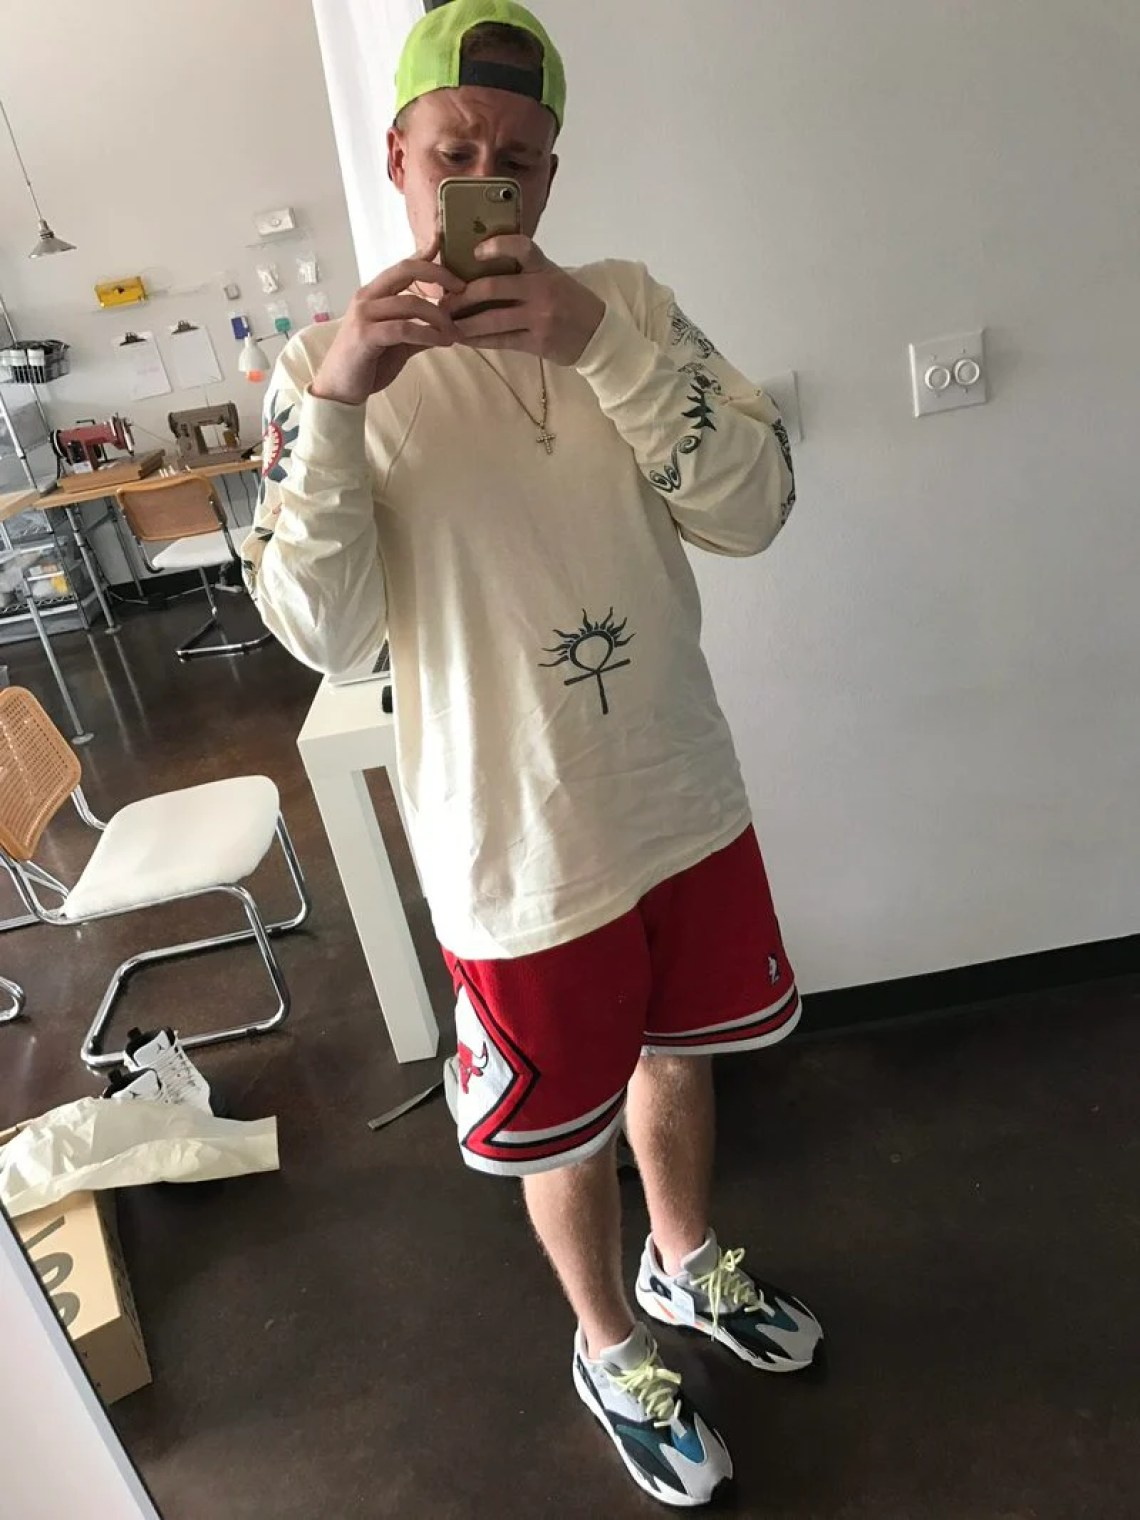 729446edeebc ... and hopefully I meet some cool people in real life who ask me about   em. That s for sure my favorite thing with clothes and sneakers.